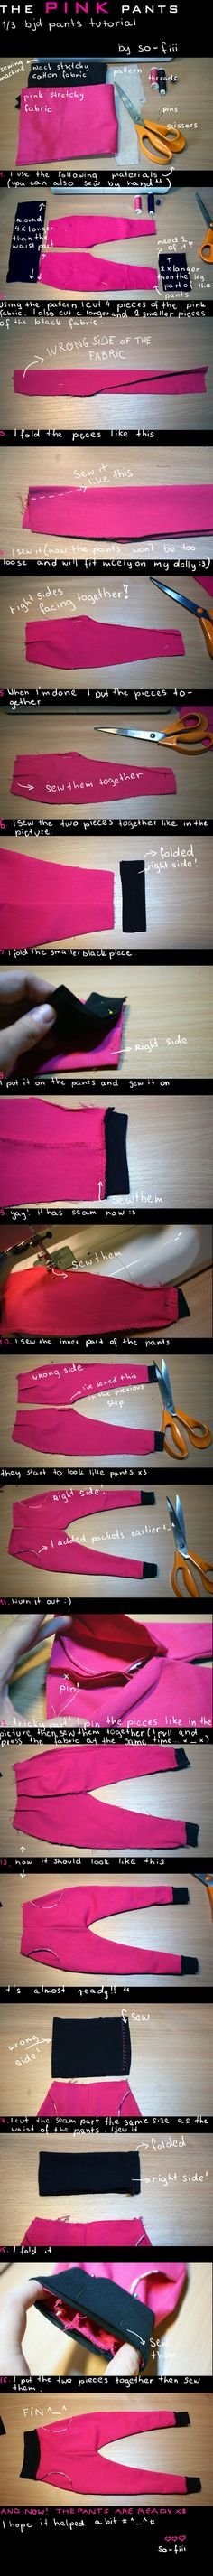 the pink pants-TUTORIAL by so-fiii on deviantART